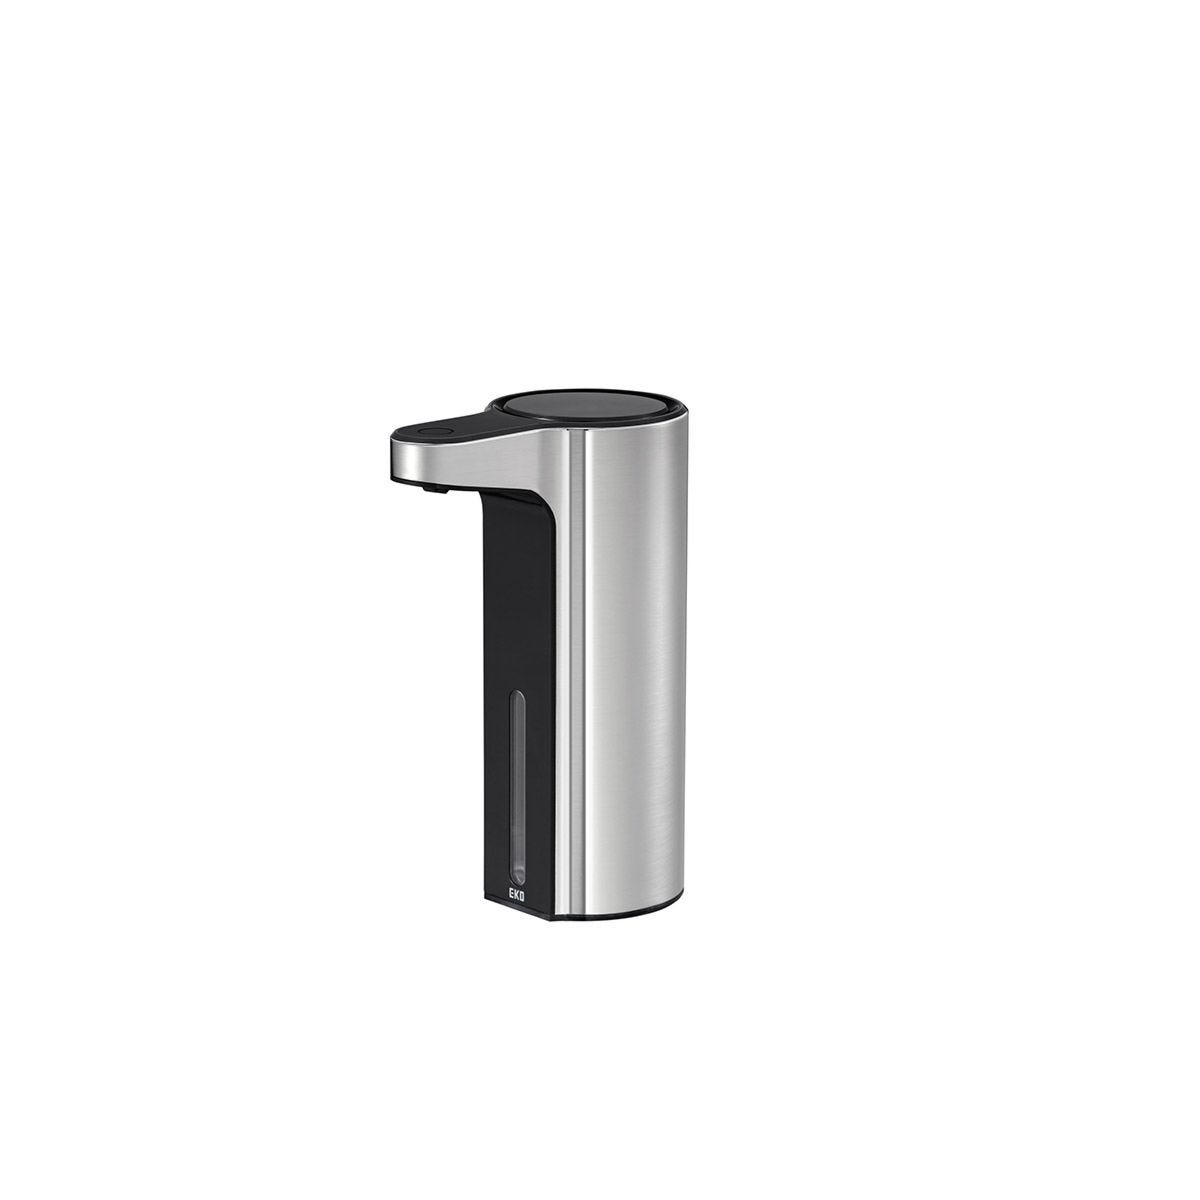 EKO Aroma Smart Sensor Soap Dispenser - Metallic